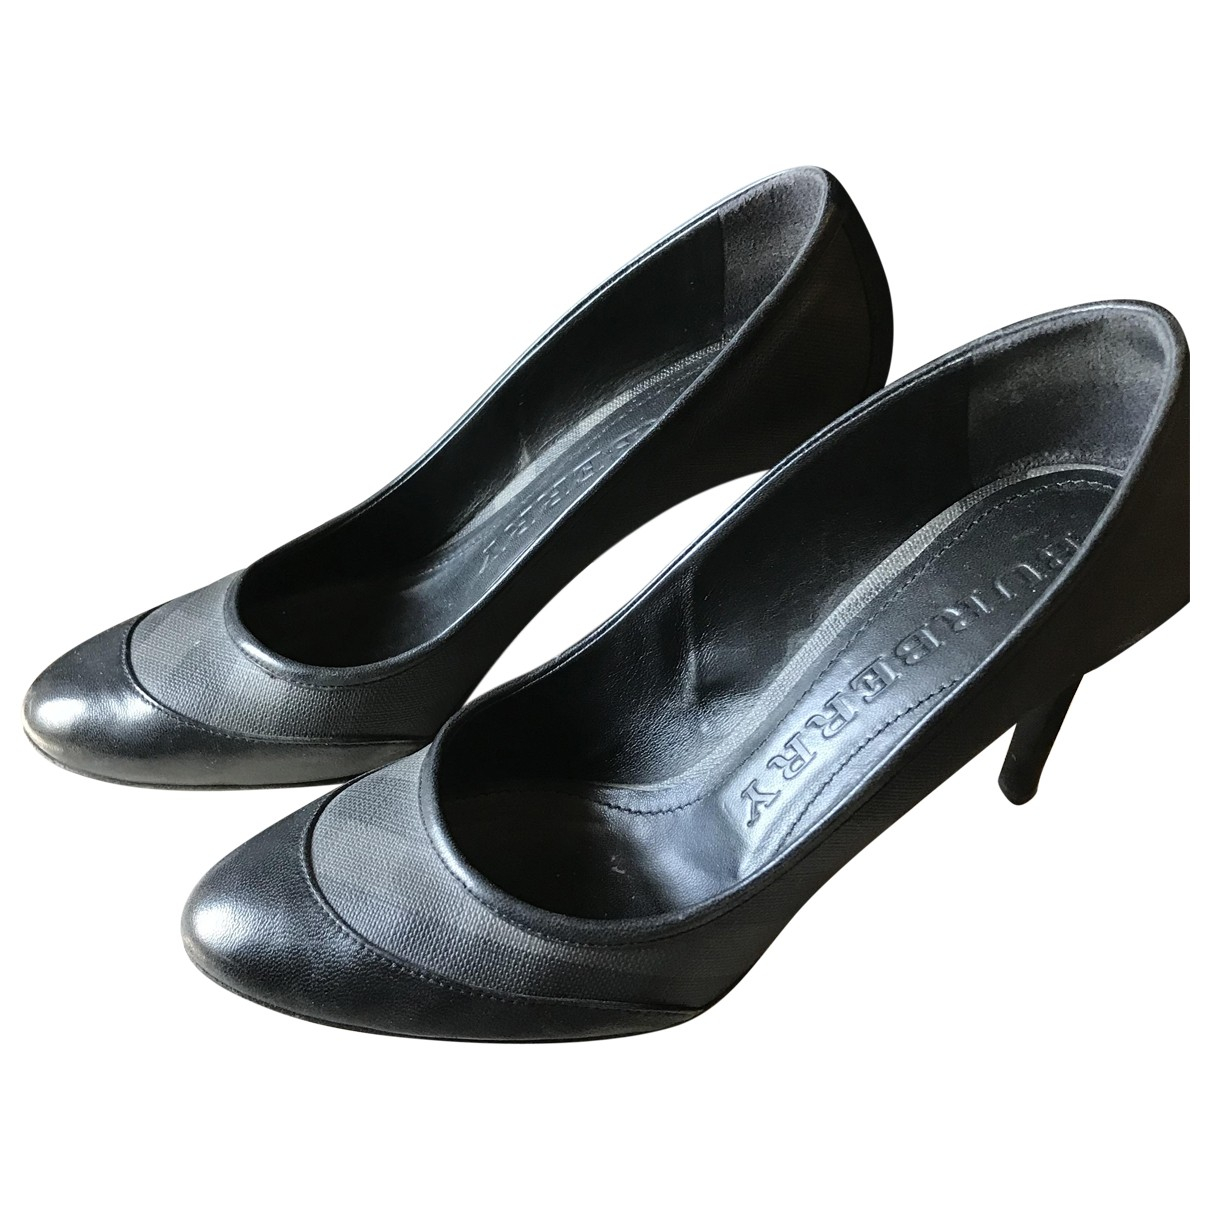 Burberry \N Black Leather Heels for Women 39 EU